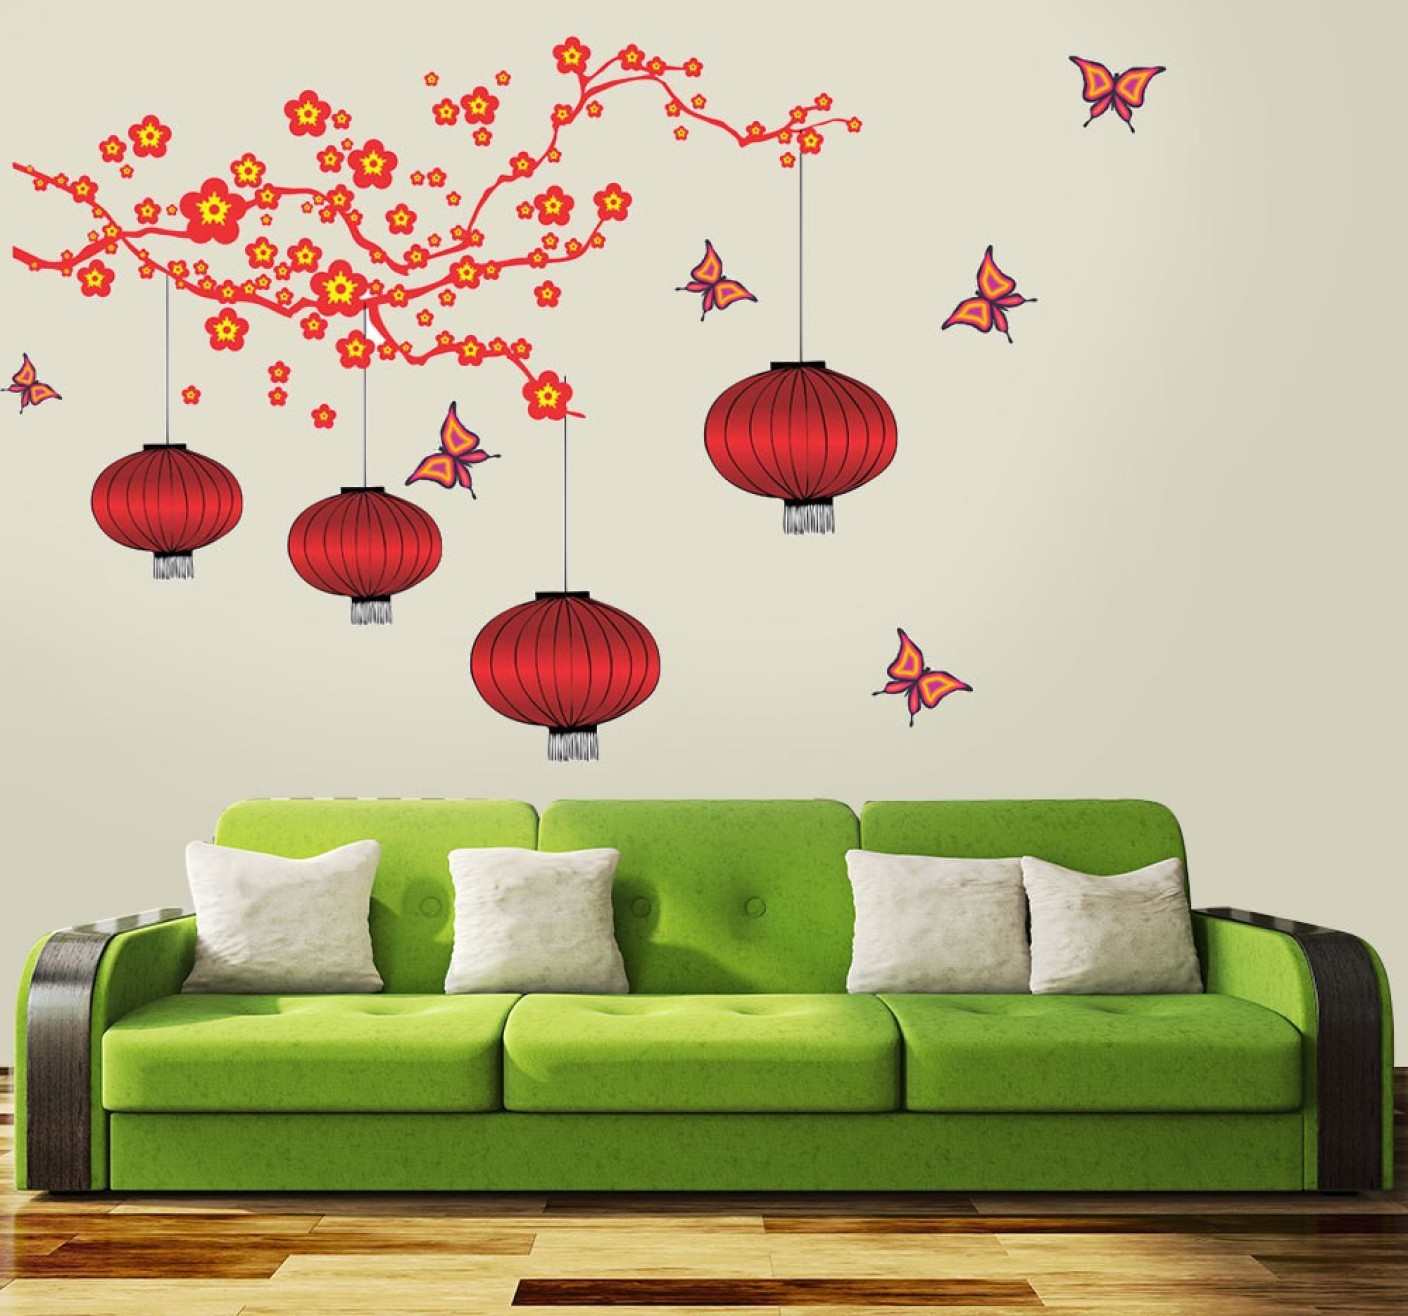 New Way Decals Wall Sticker Fantasy Wallpaper Price In